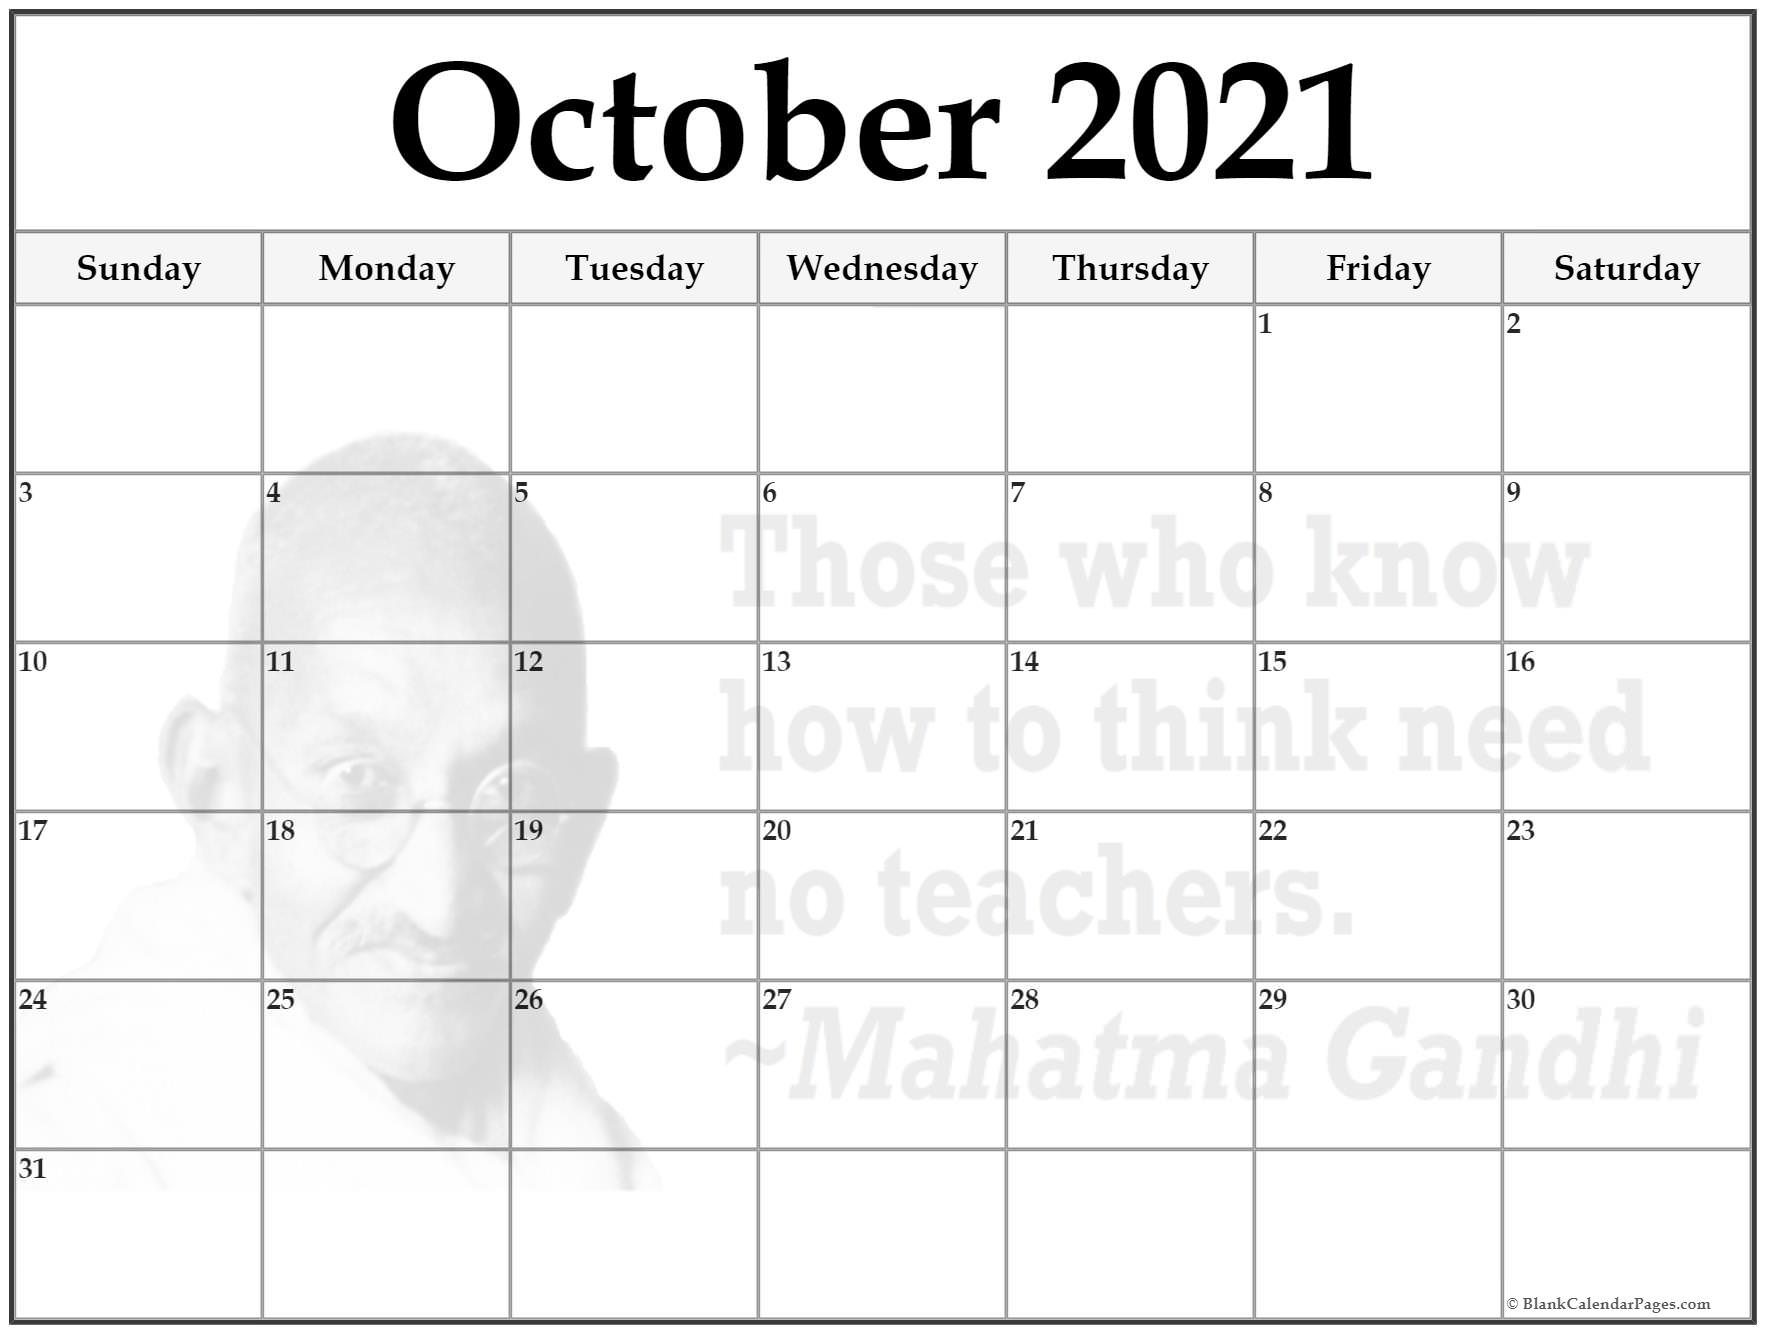 October 2020 monthly calendar template. Those who know how to think need no teachers. ~Mahatma Gandhi